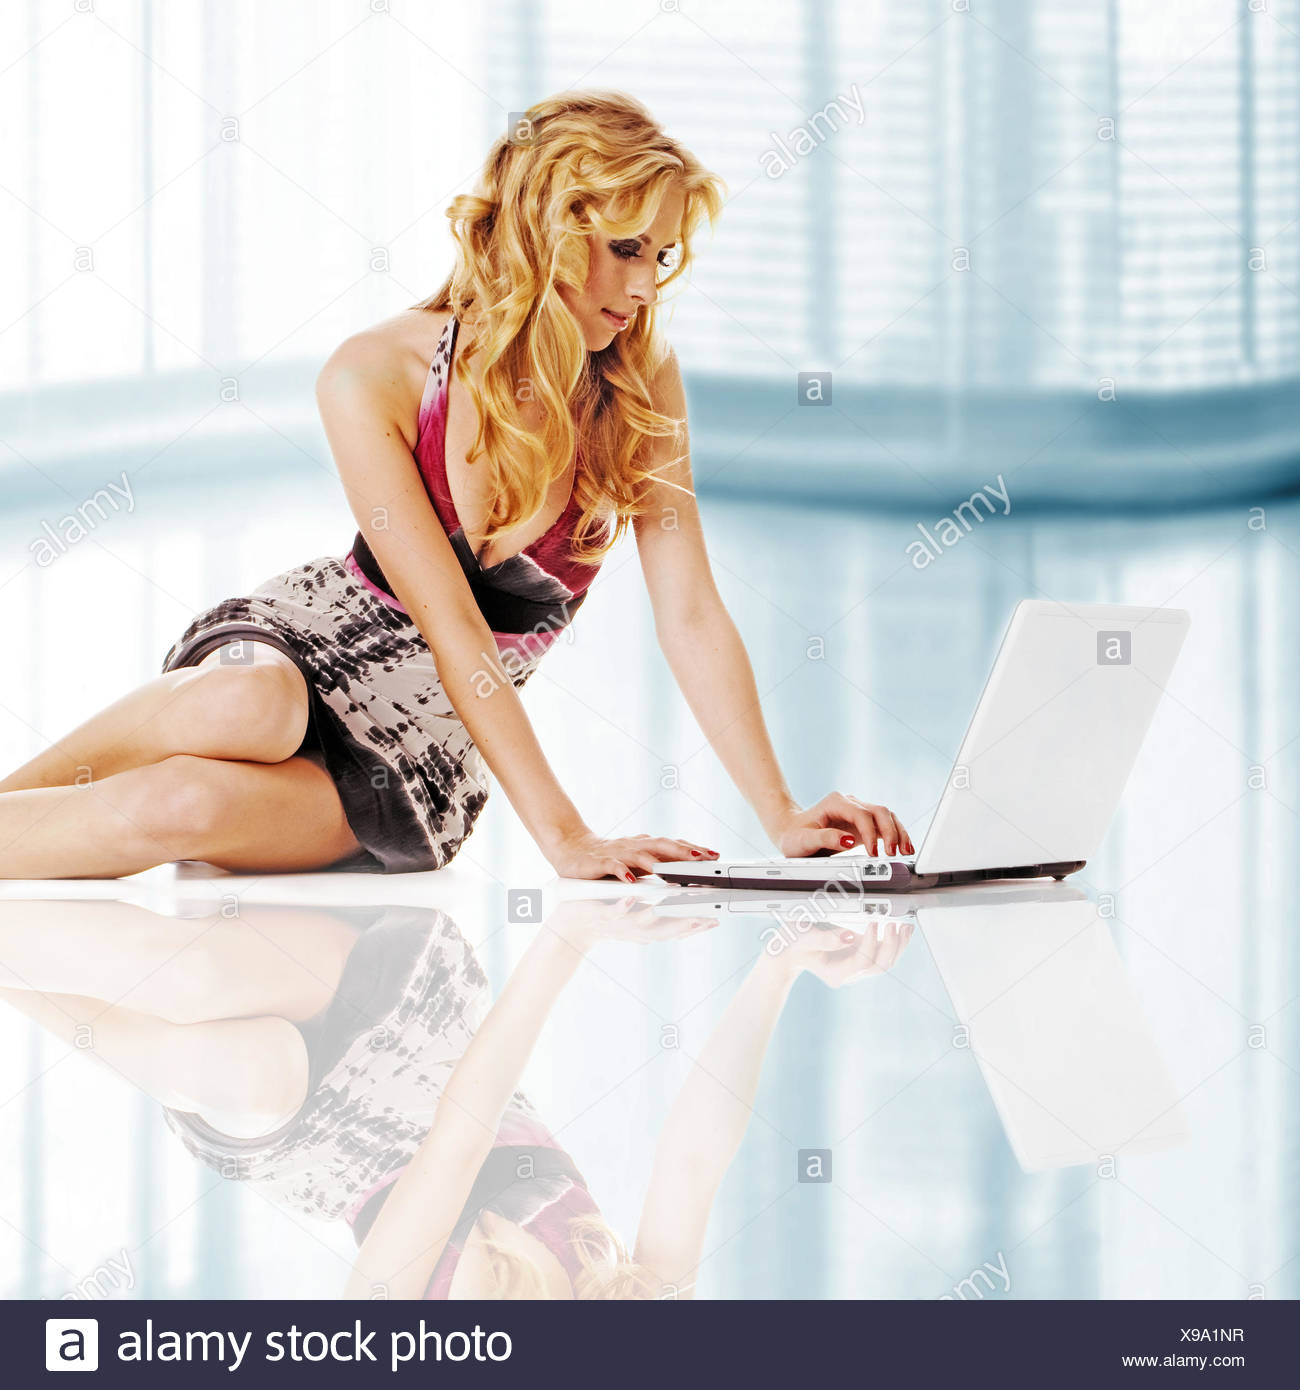 Beautiful girl on floor with laptop - Stock Image